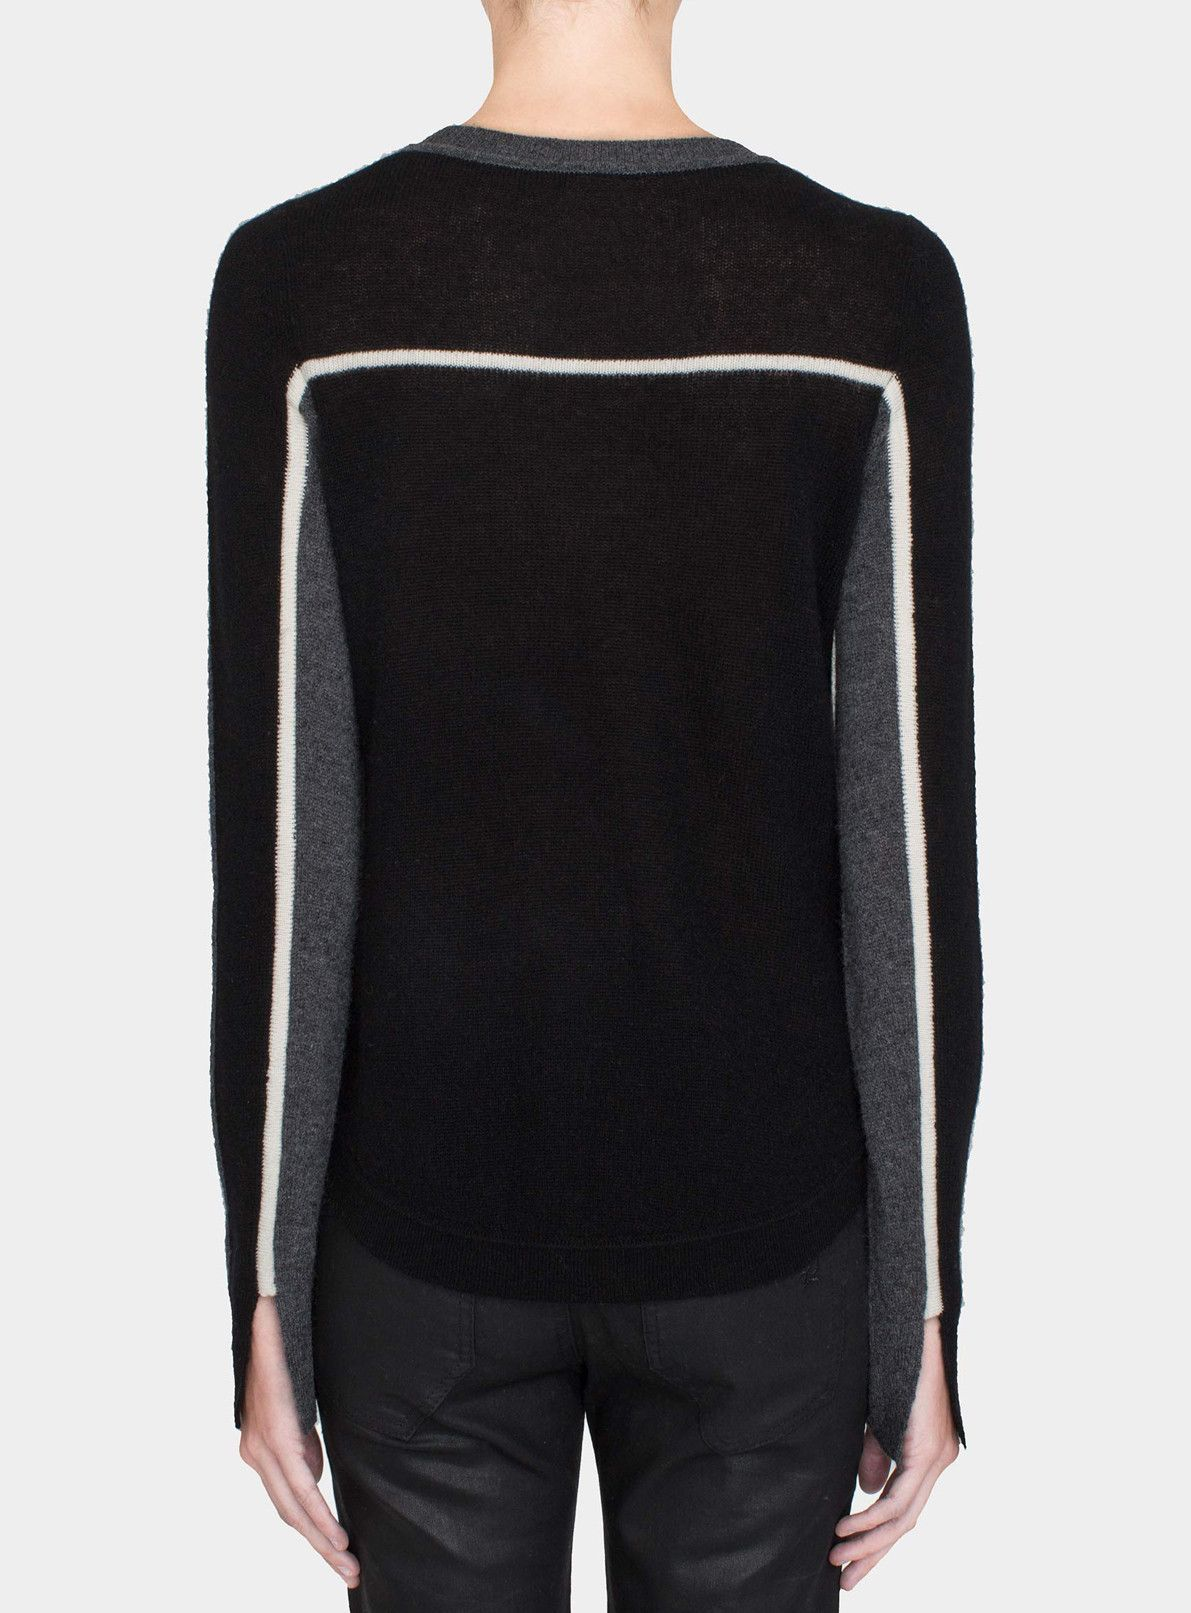 Sport Back Sweater